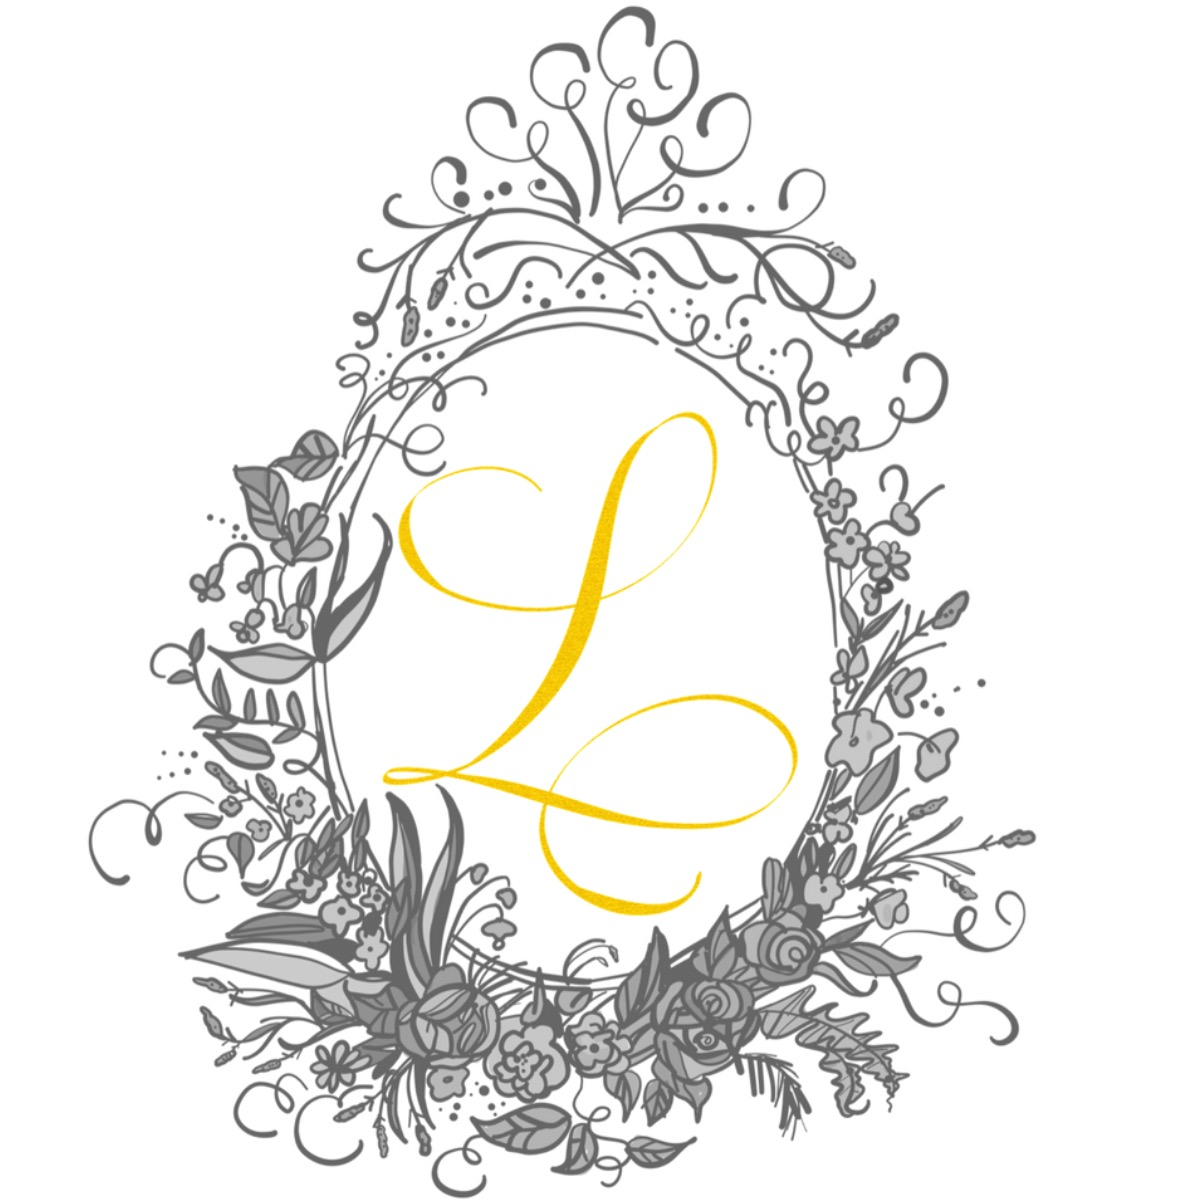 LAURA LAVENDER CALLIGRAPHY, ILLUSTRATION & DESIGN